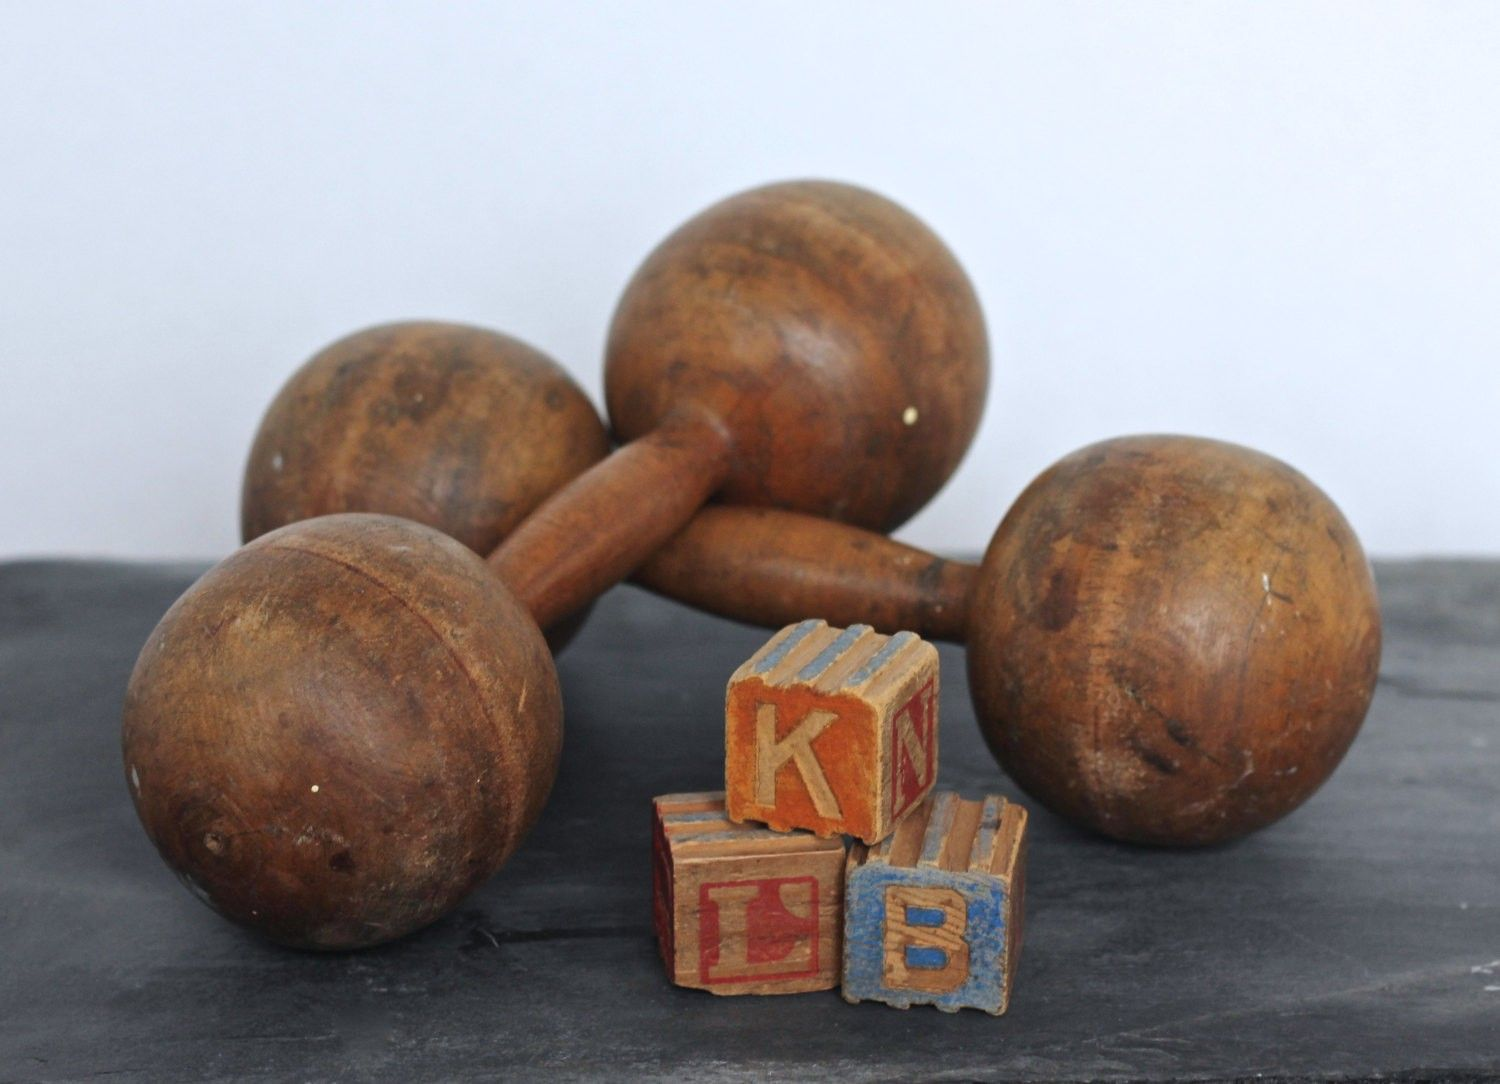 Vintage item Materials: wooden, wood Ships from Toronto, Canad ...